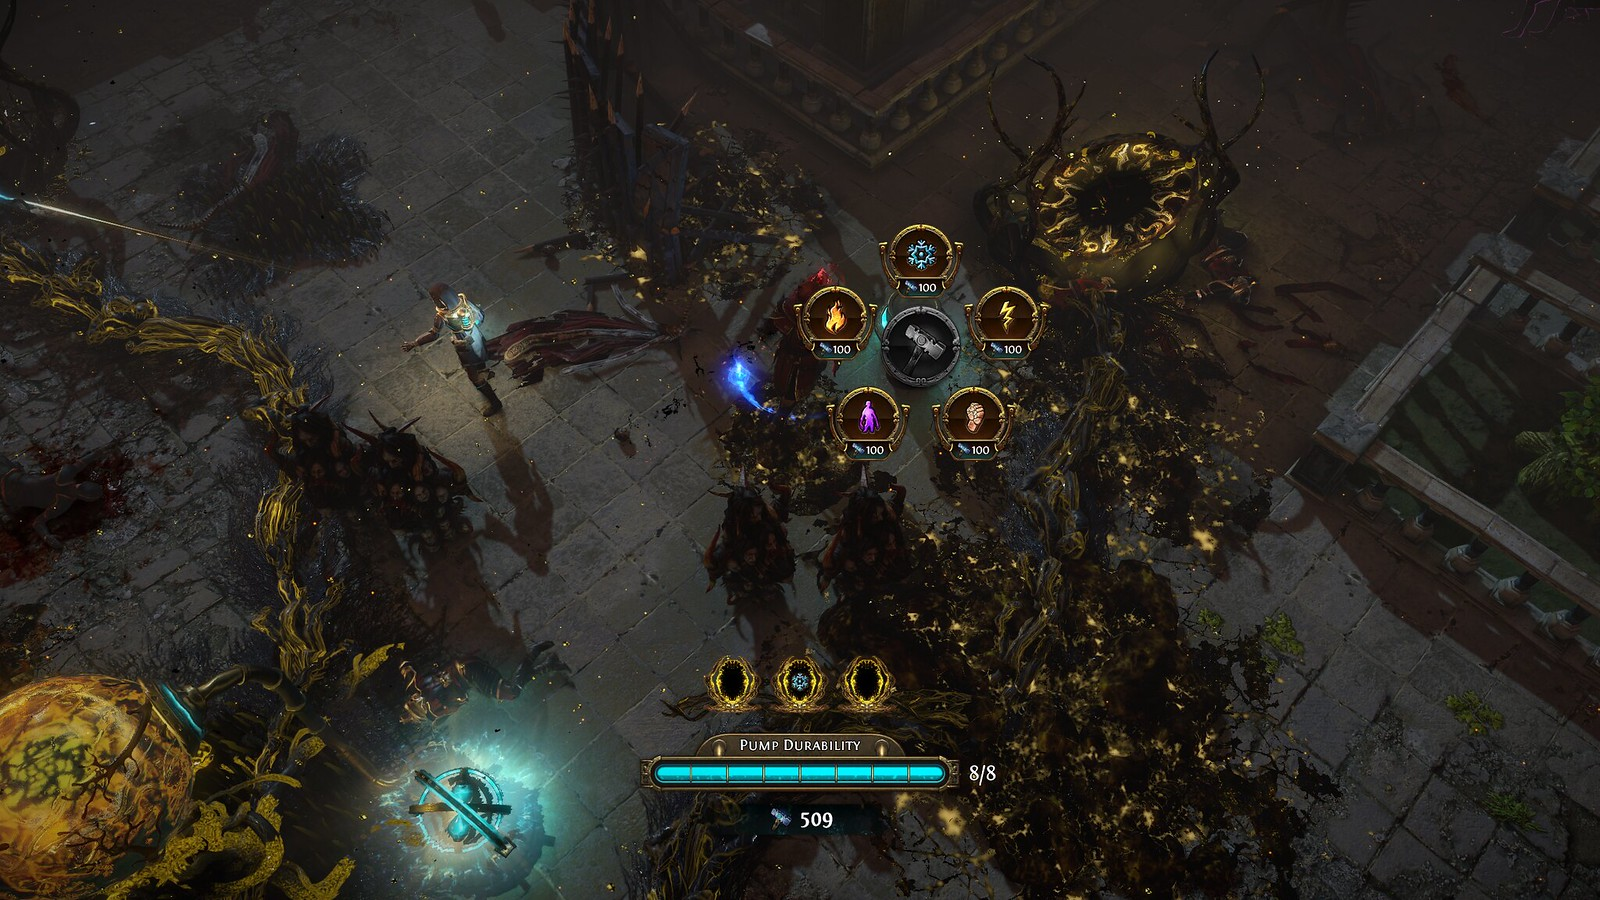 Path of Exile: Blight on PS4